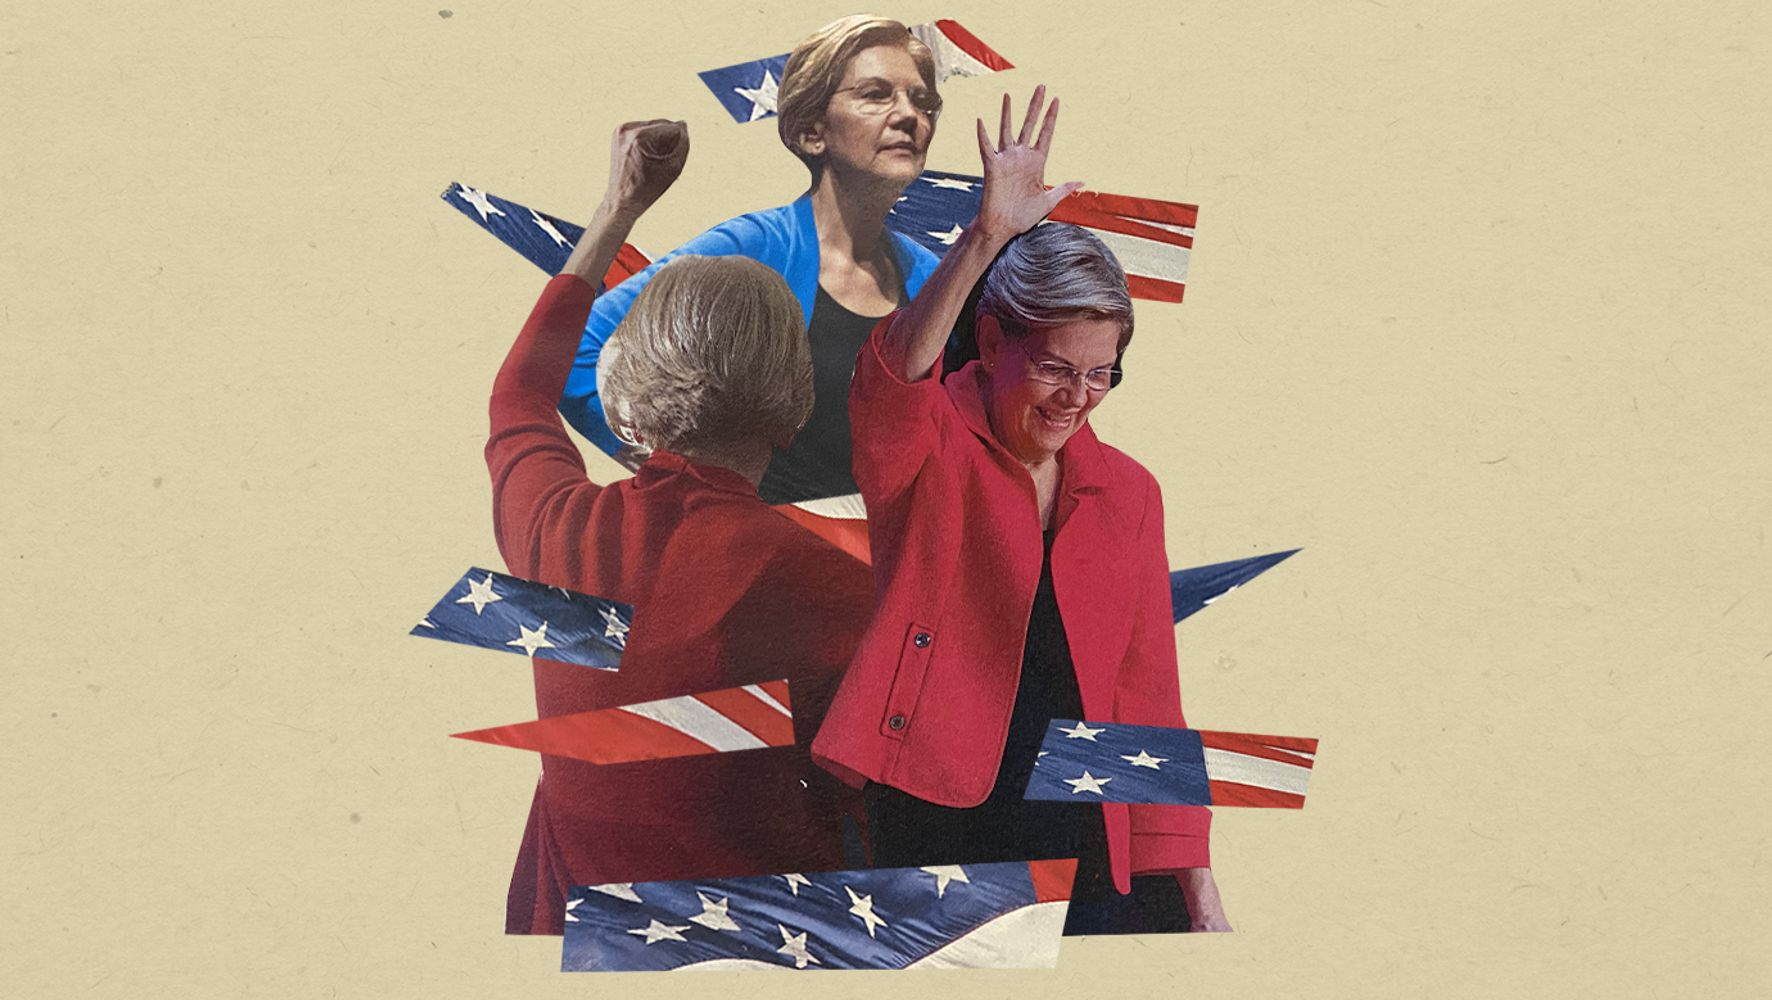 Elizabeth Warren Has A Plan For Foreign Policy. You Just Probably Haven't Heard About It.